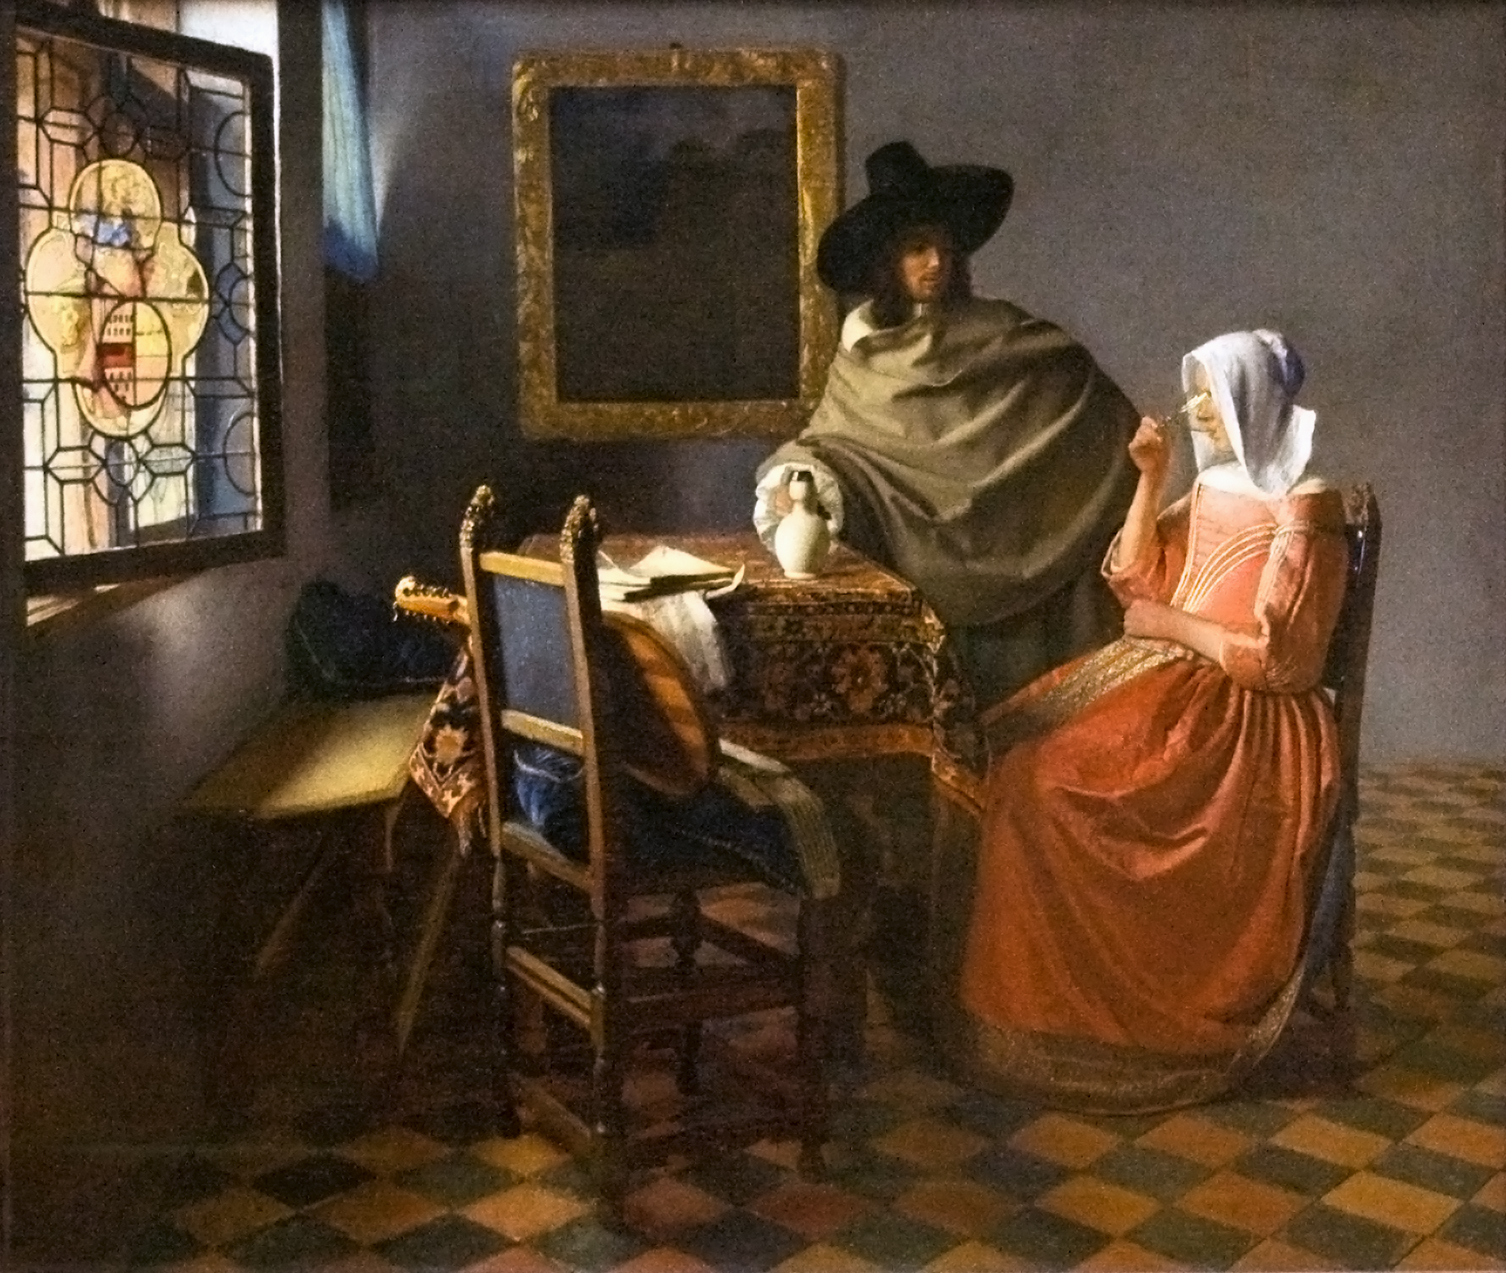 vermeer by Julia Harvath on Prezi